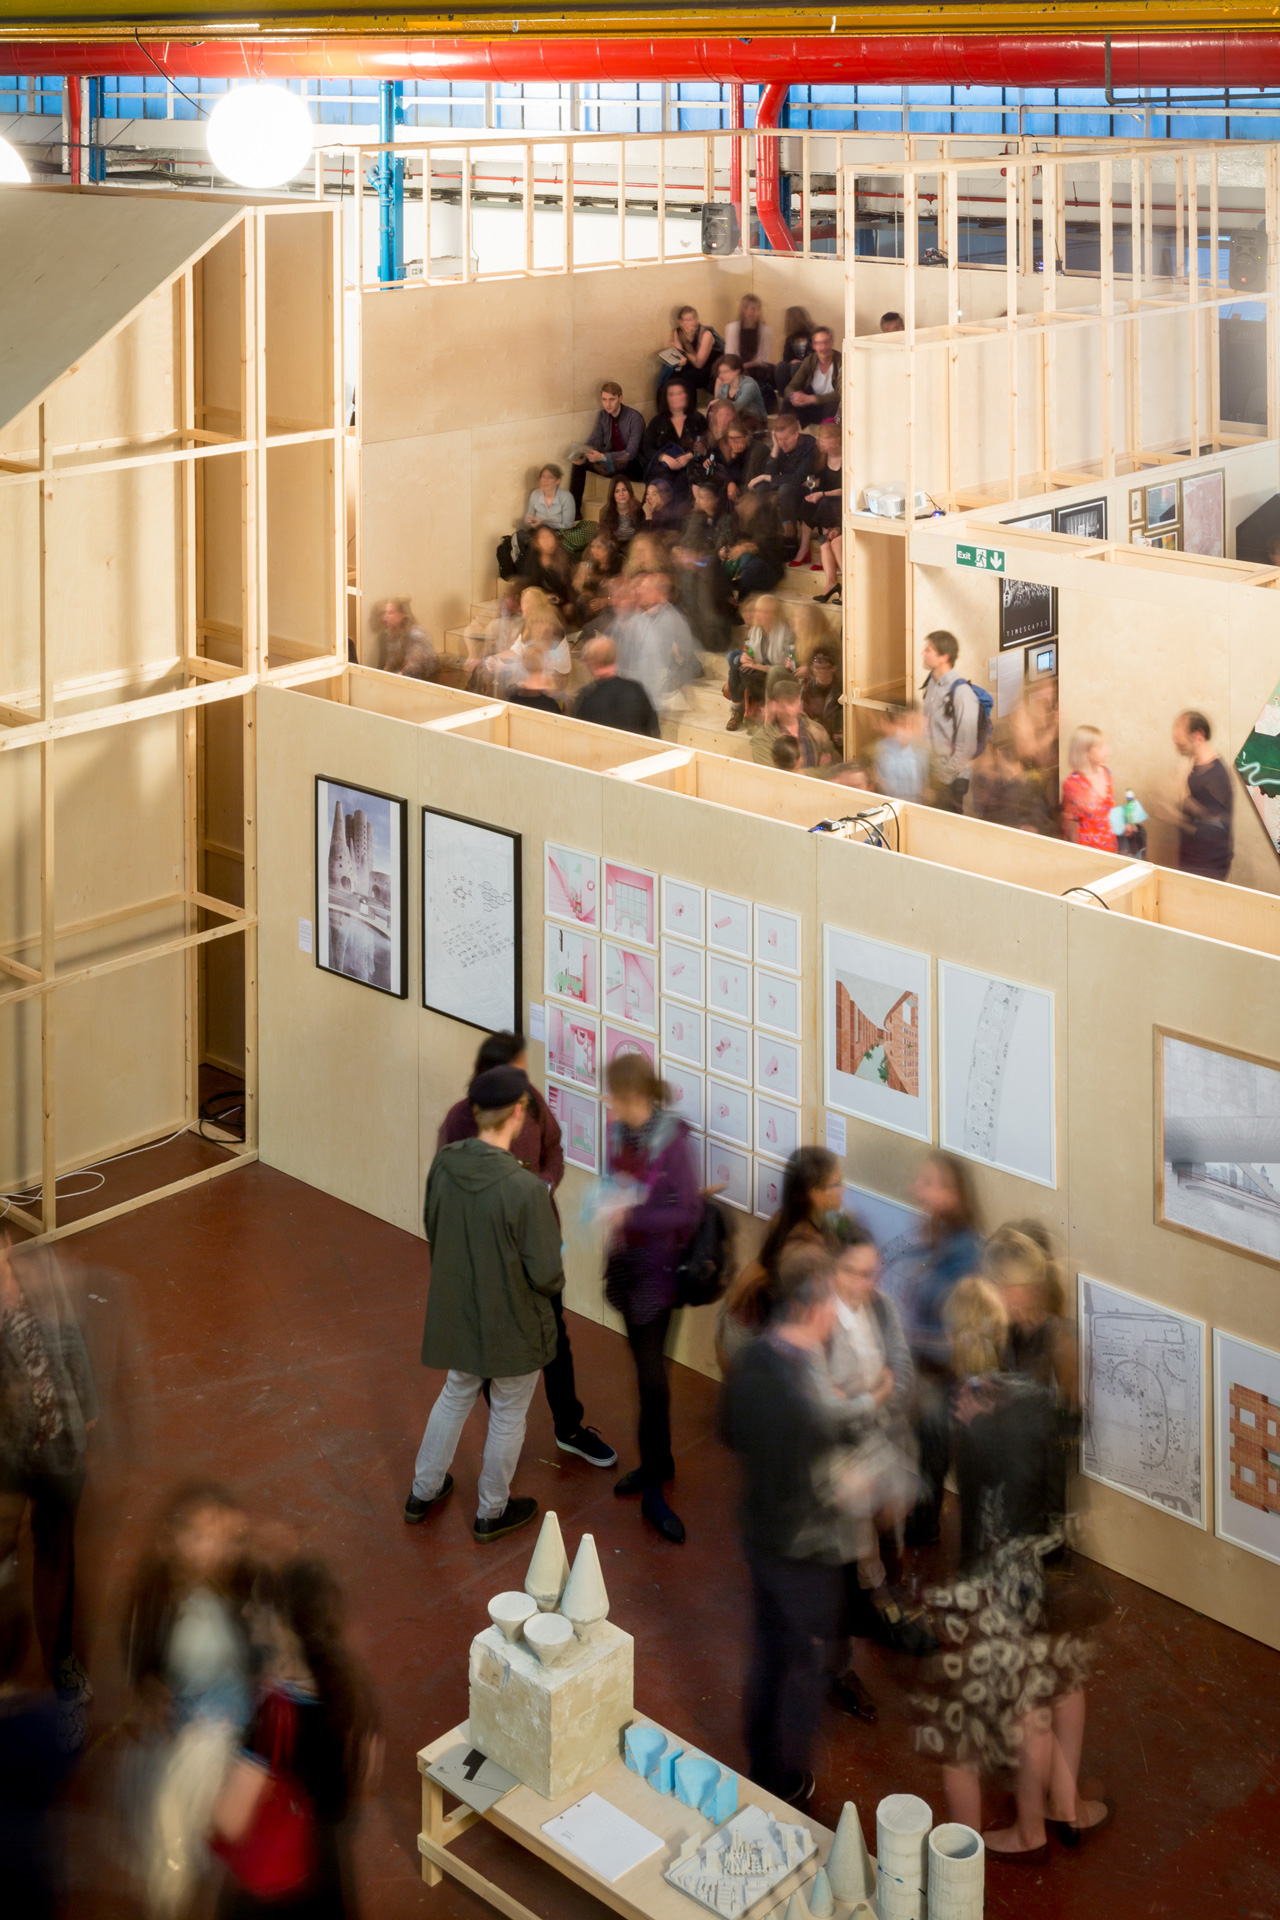 The Royal College of Art SoA Degree Show 2017 was an unmissable exhibition. Click to view how WFM helped support clients.